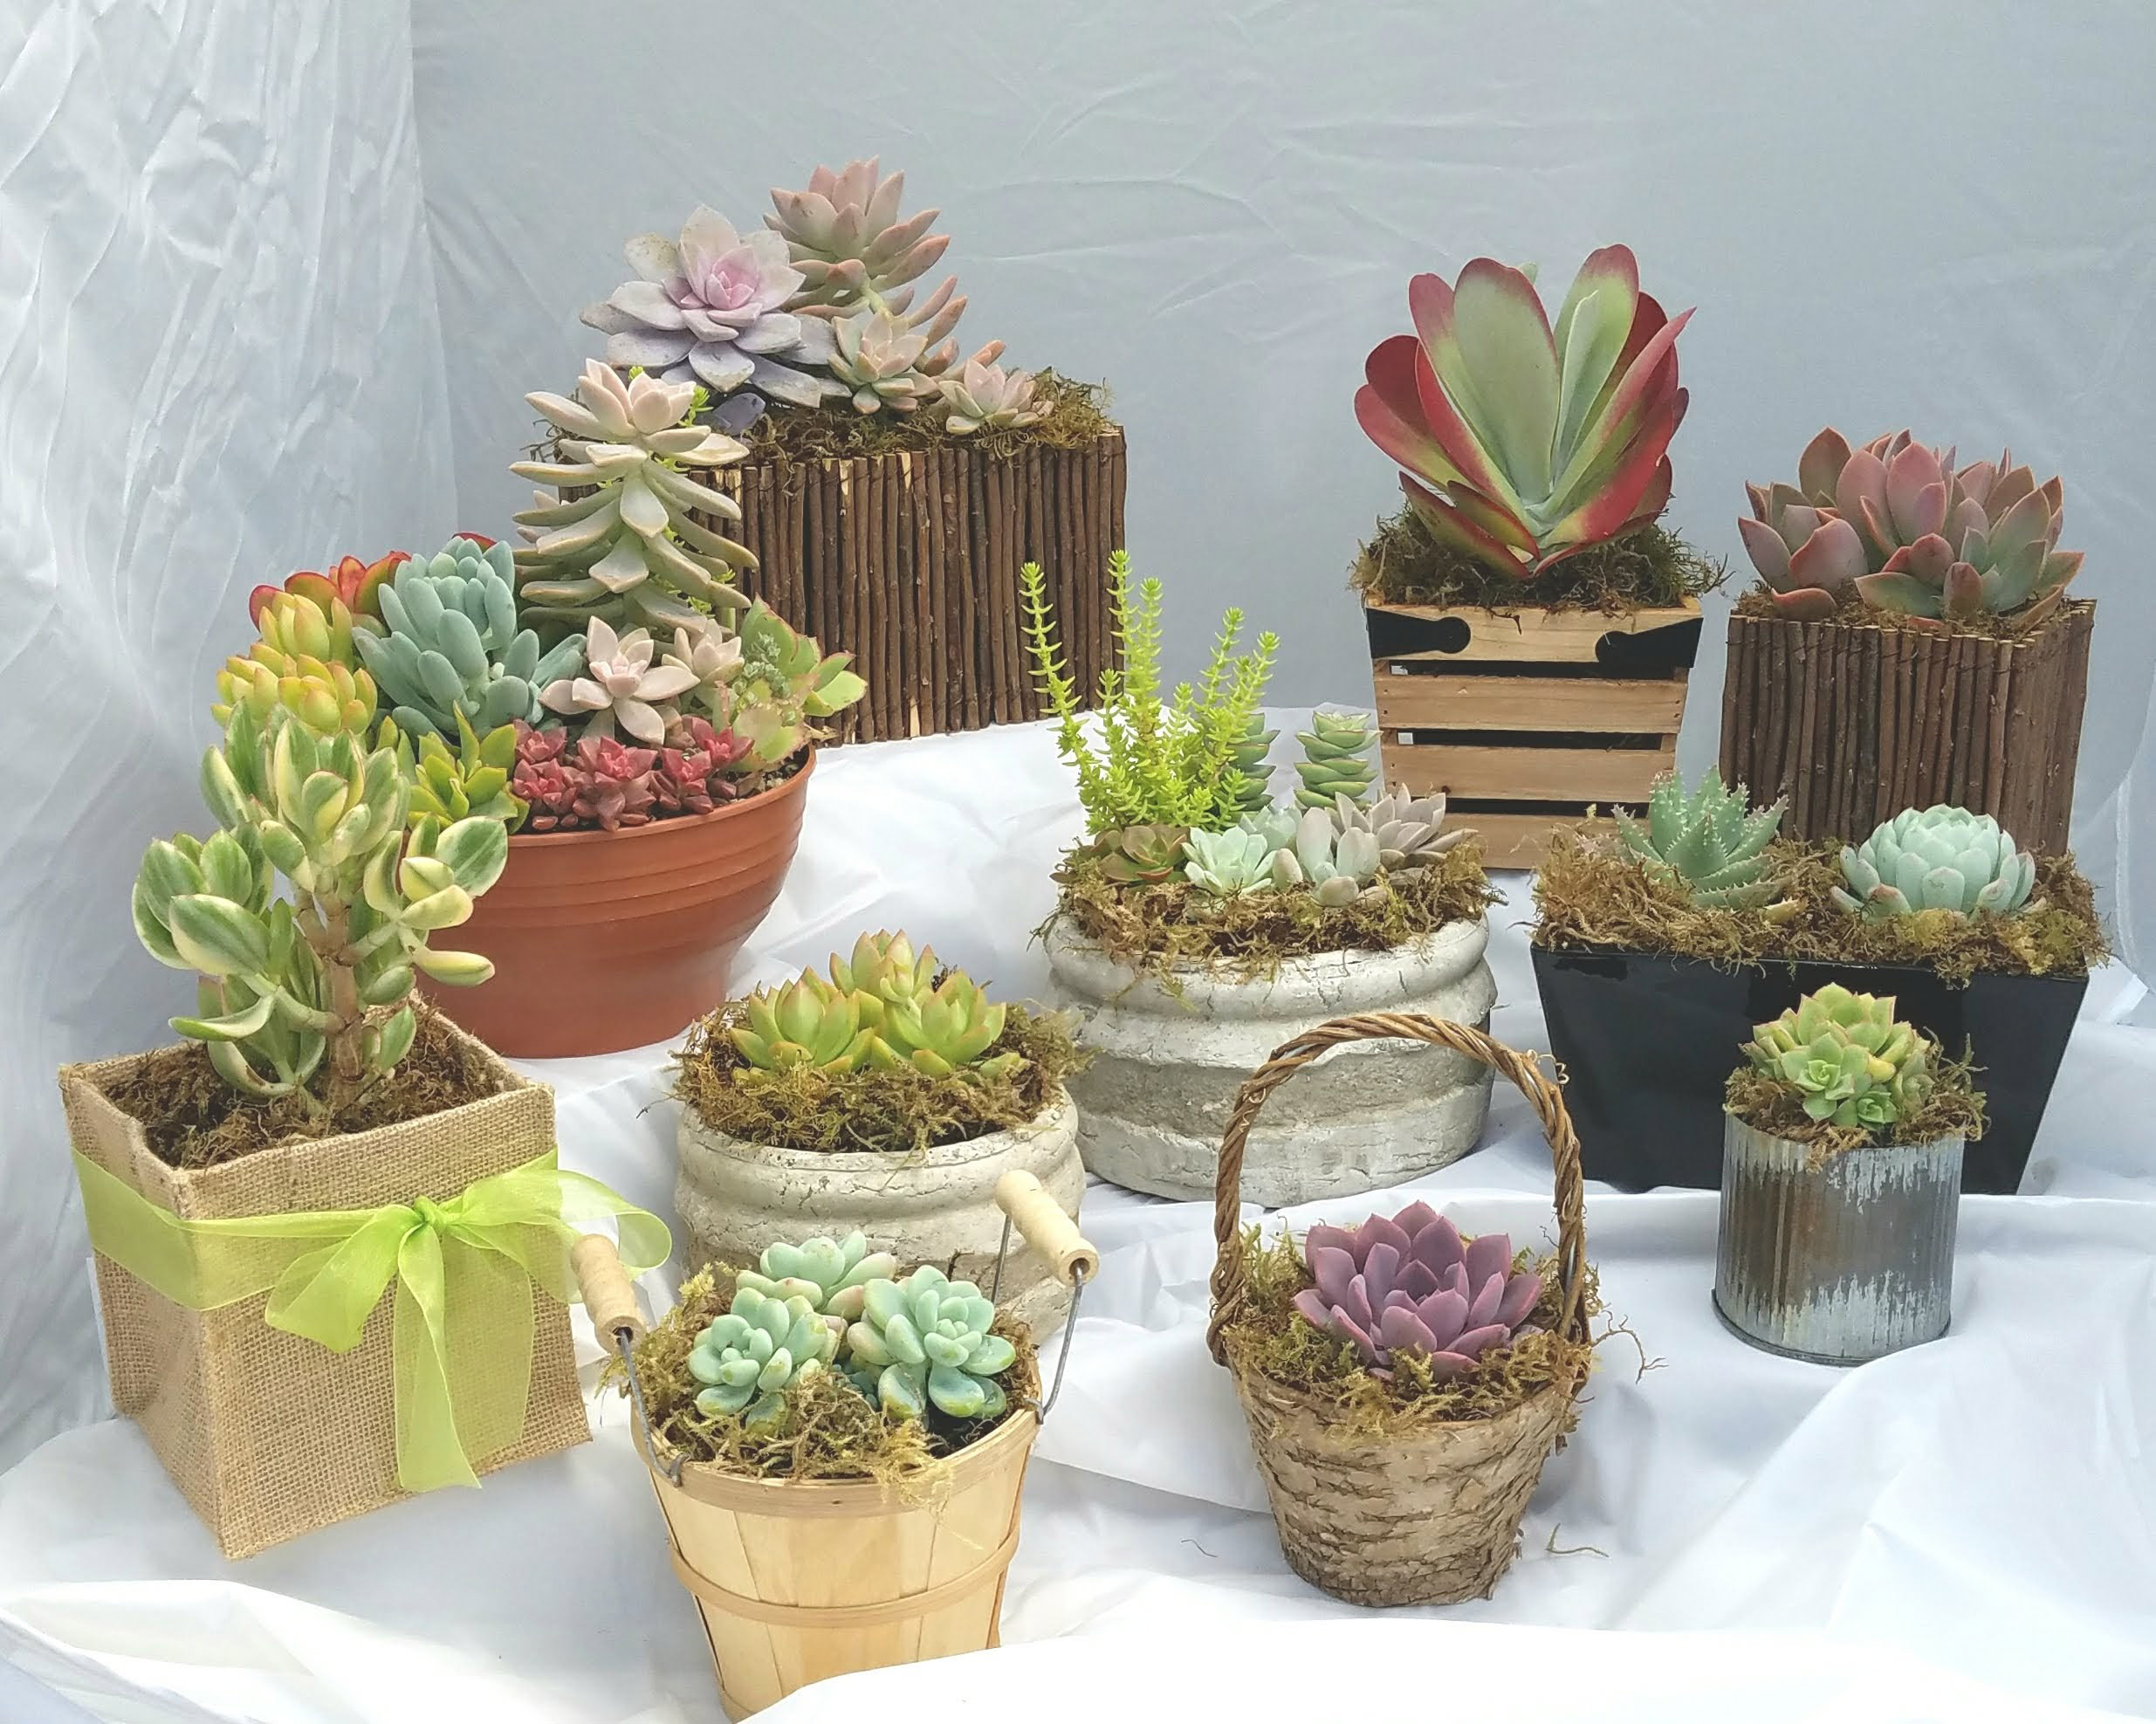 Succulent baskets on display